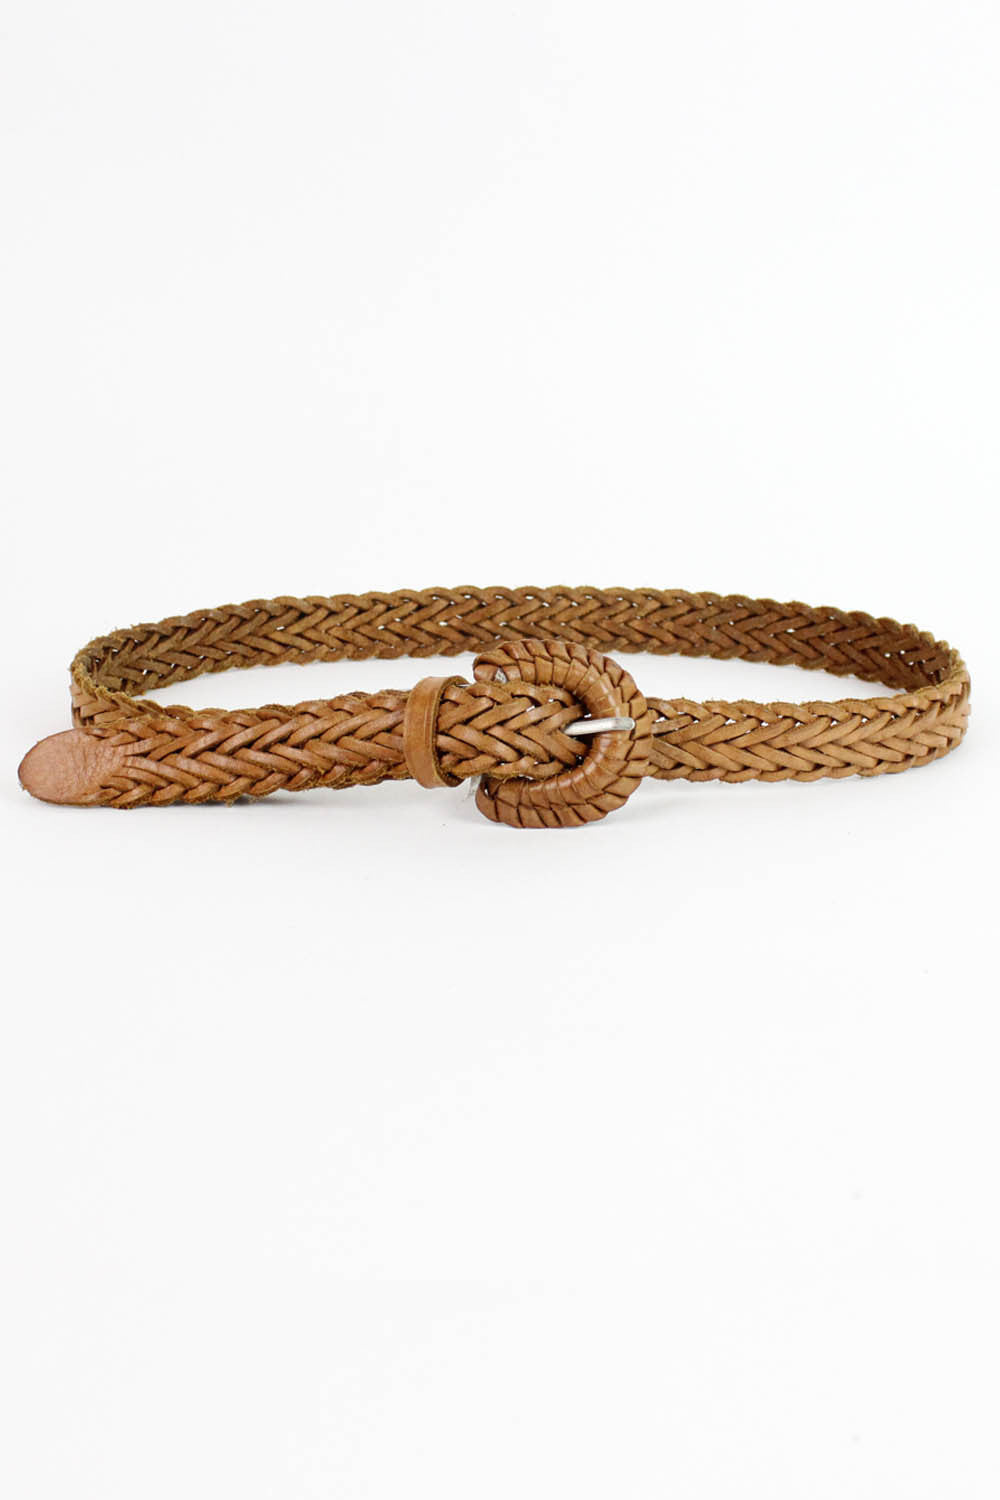 Tawny Braided Belt